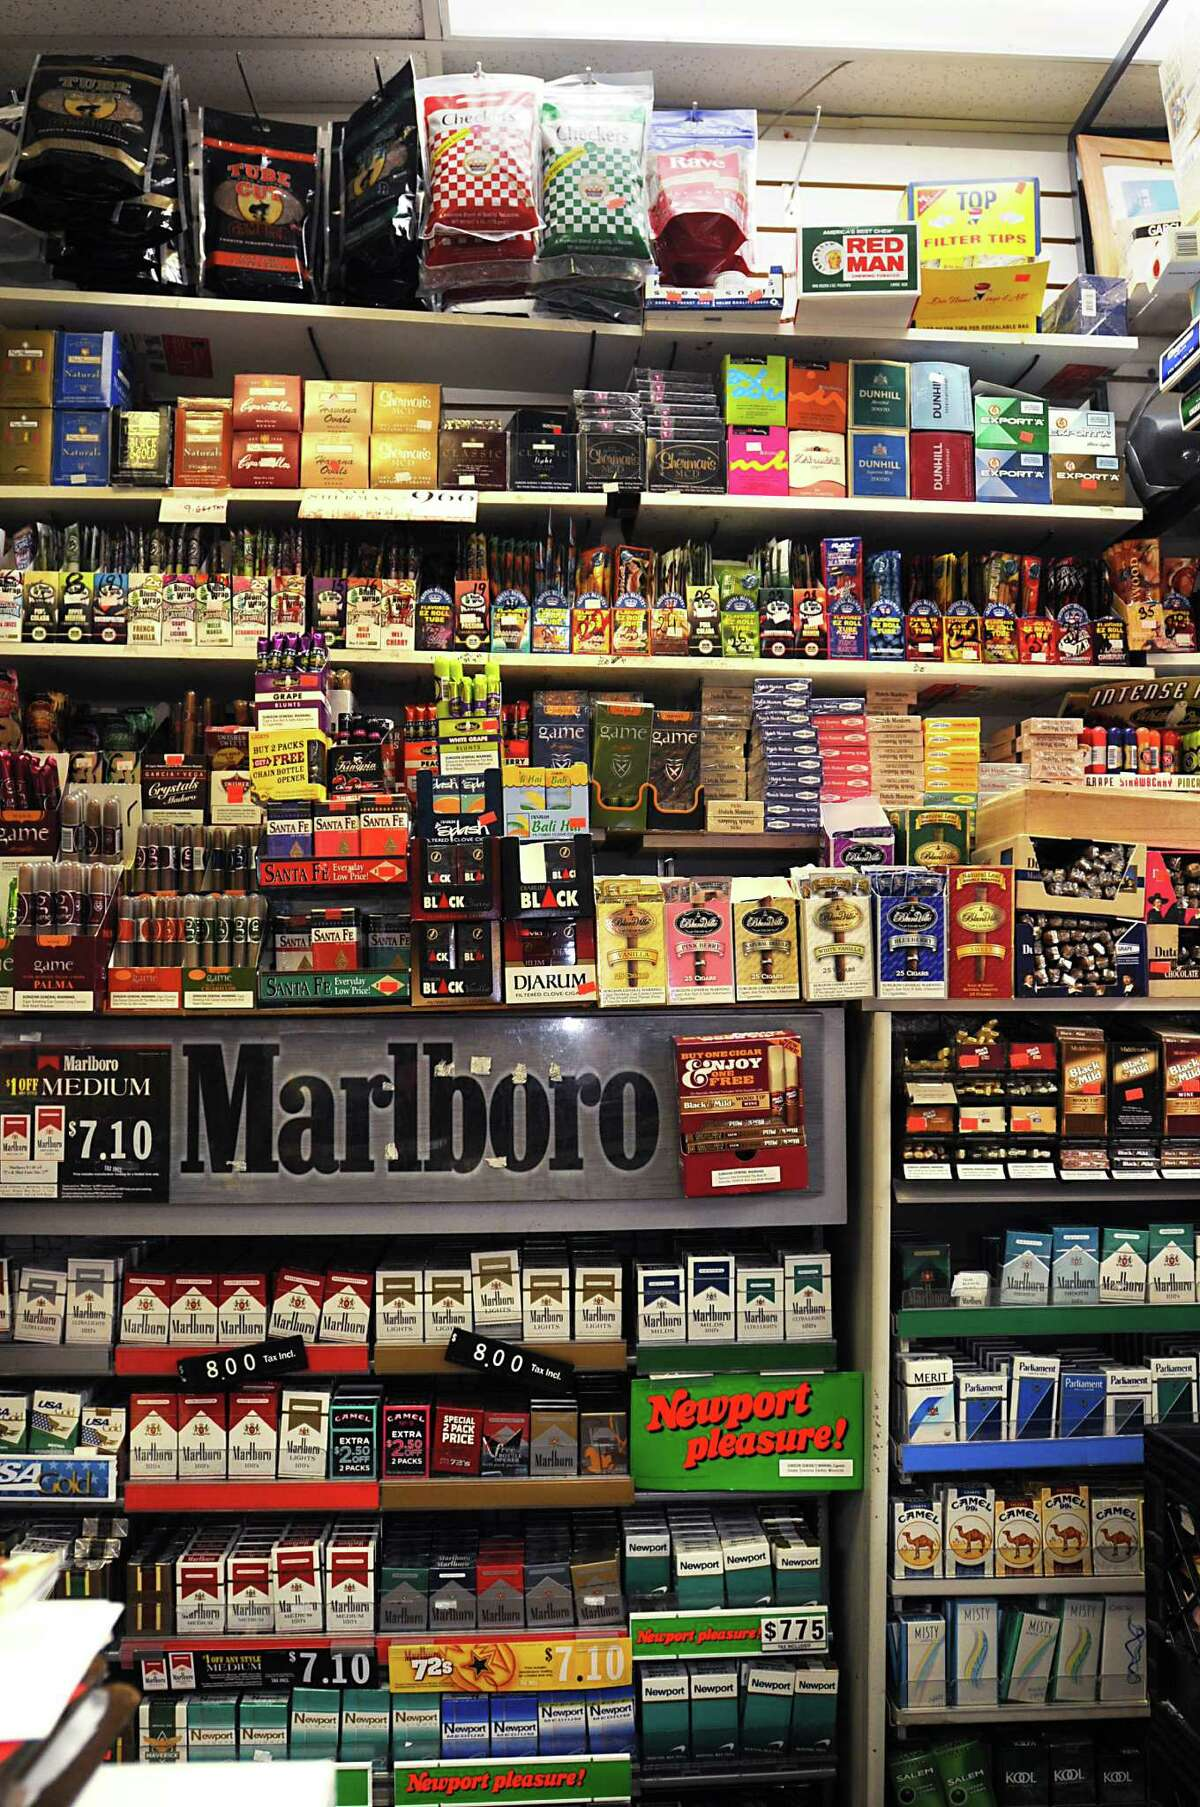 Shelves of tobacco products behind the front counter at Easha Convenience store Nov. 4, 2009, in Albany, N.Y. (Lori Van Buren / Times Union archive)